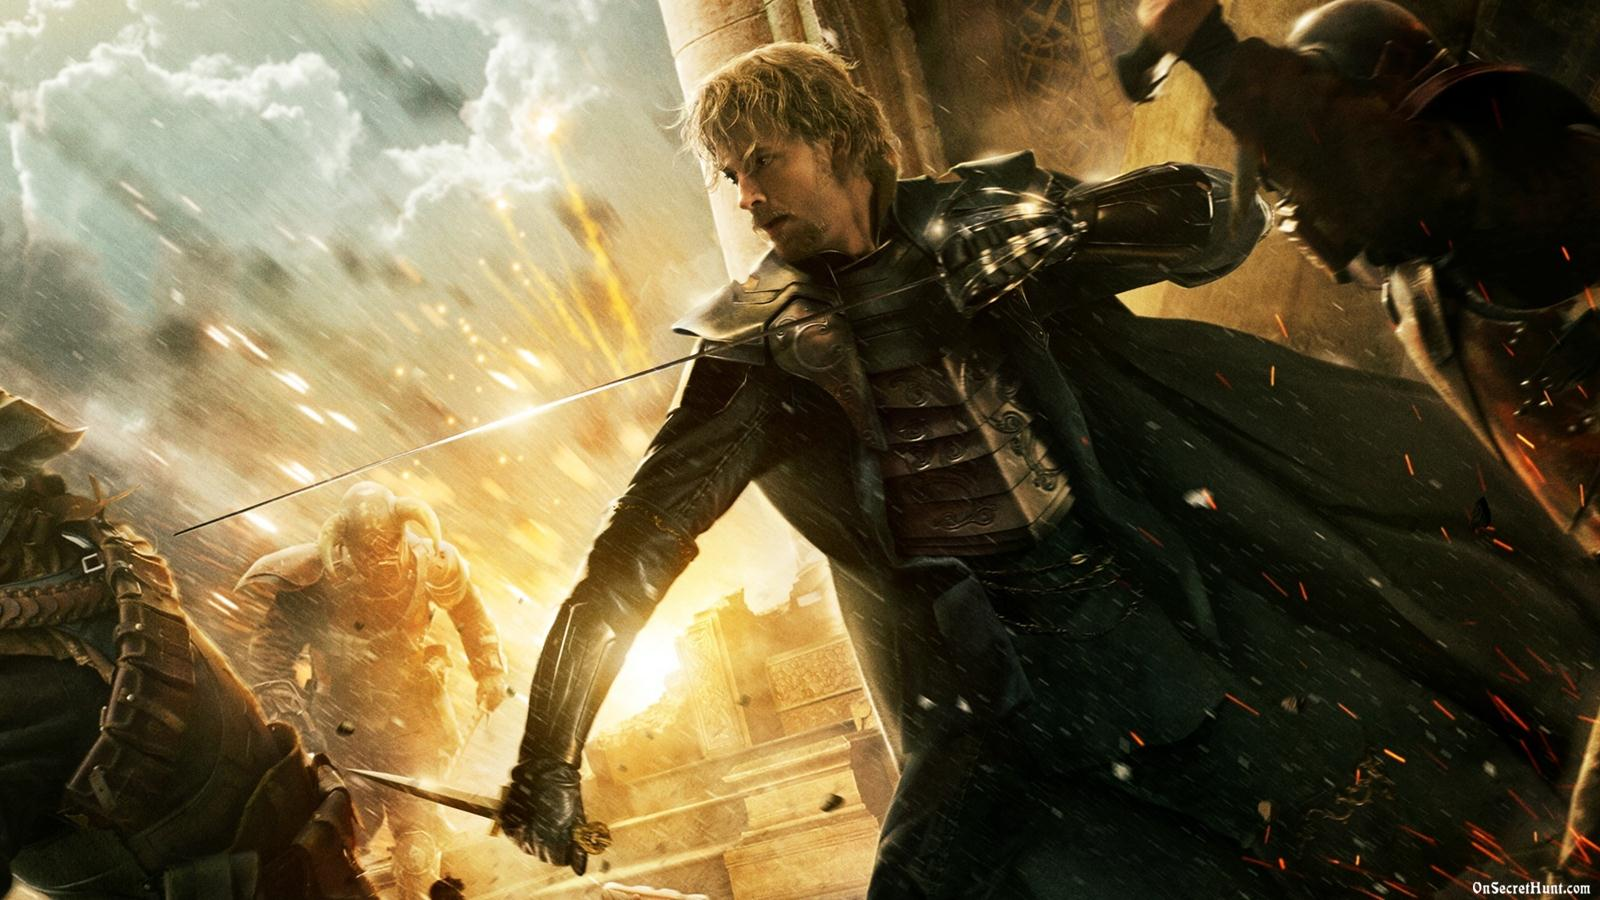 Fandral The Dashing Thor 2 Image - Fandral-Thor-2...